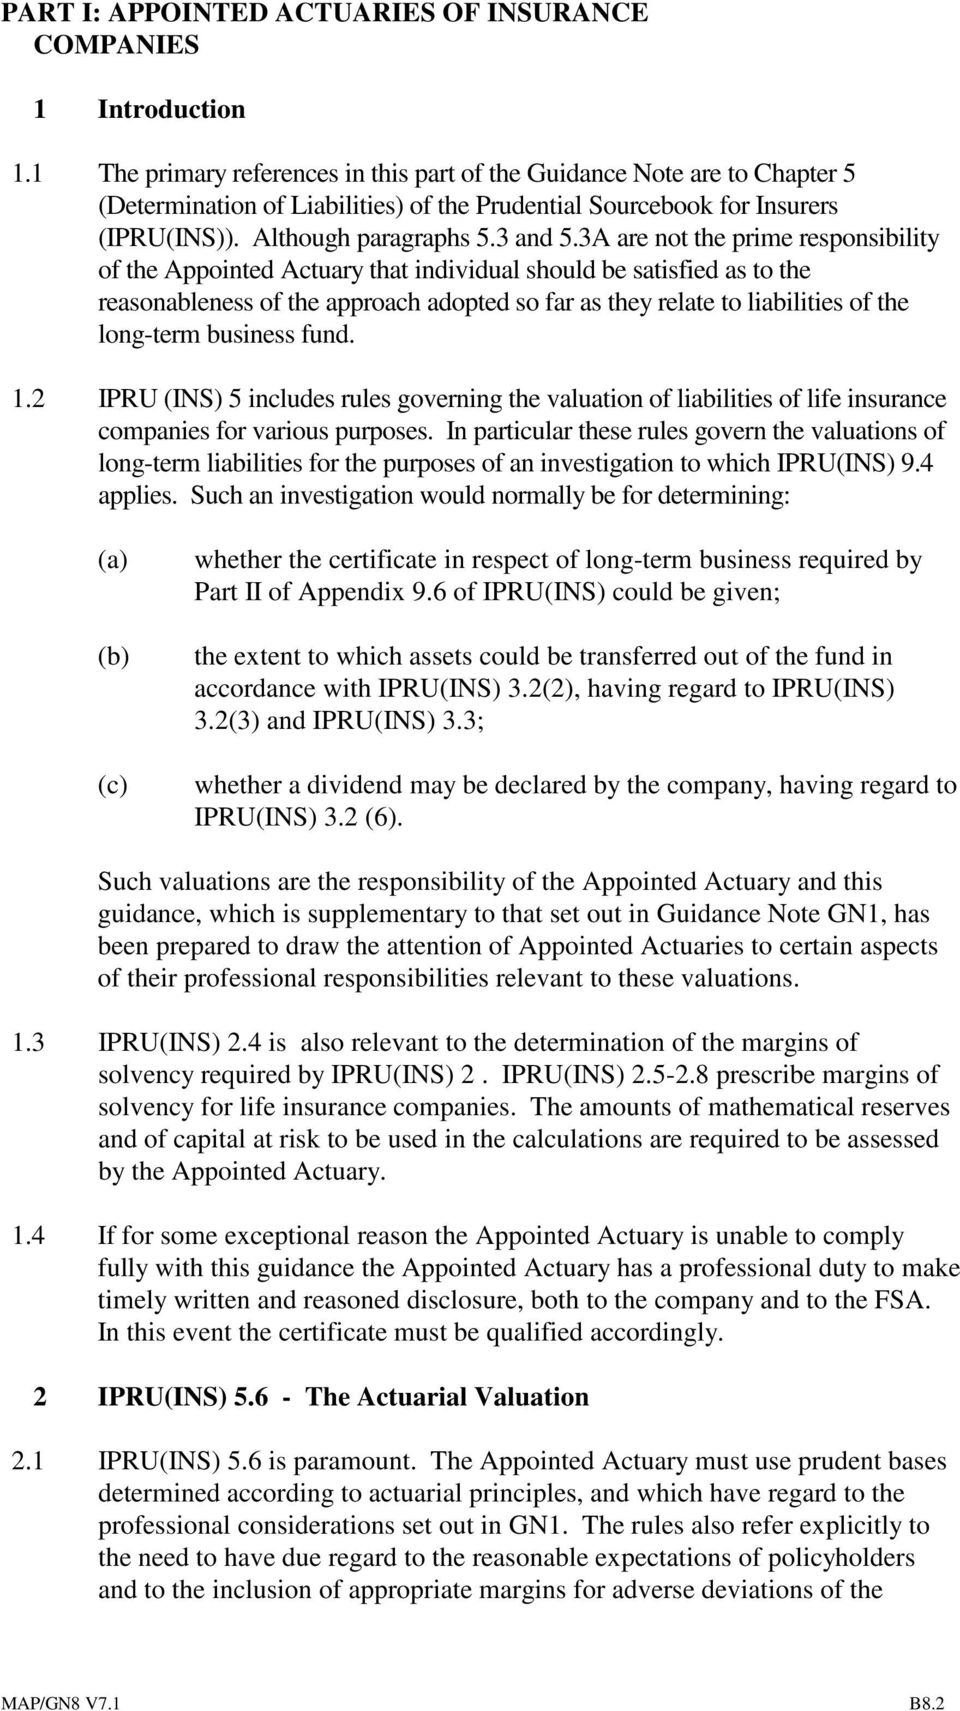 3A are not the prime responsibility of the Appointed Actuary that individual should be satisfied as to the reasonableness of the approach adopted so far as they relate to liabilities of the long-term